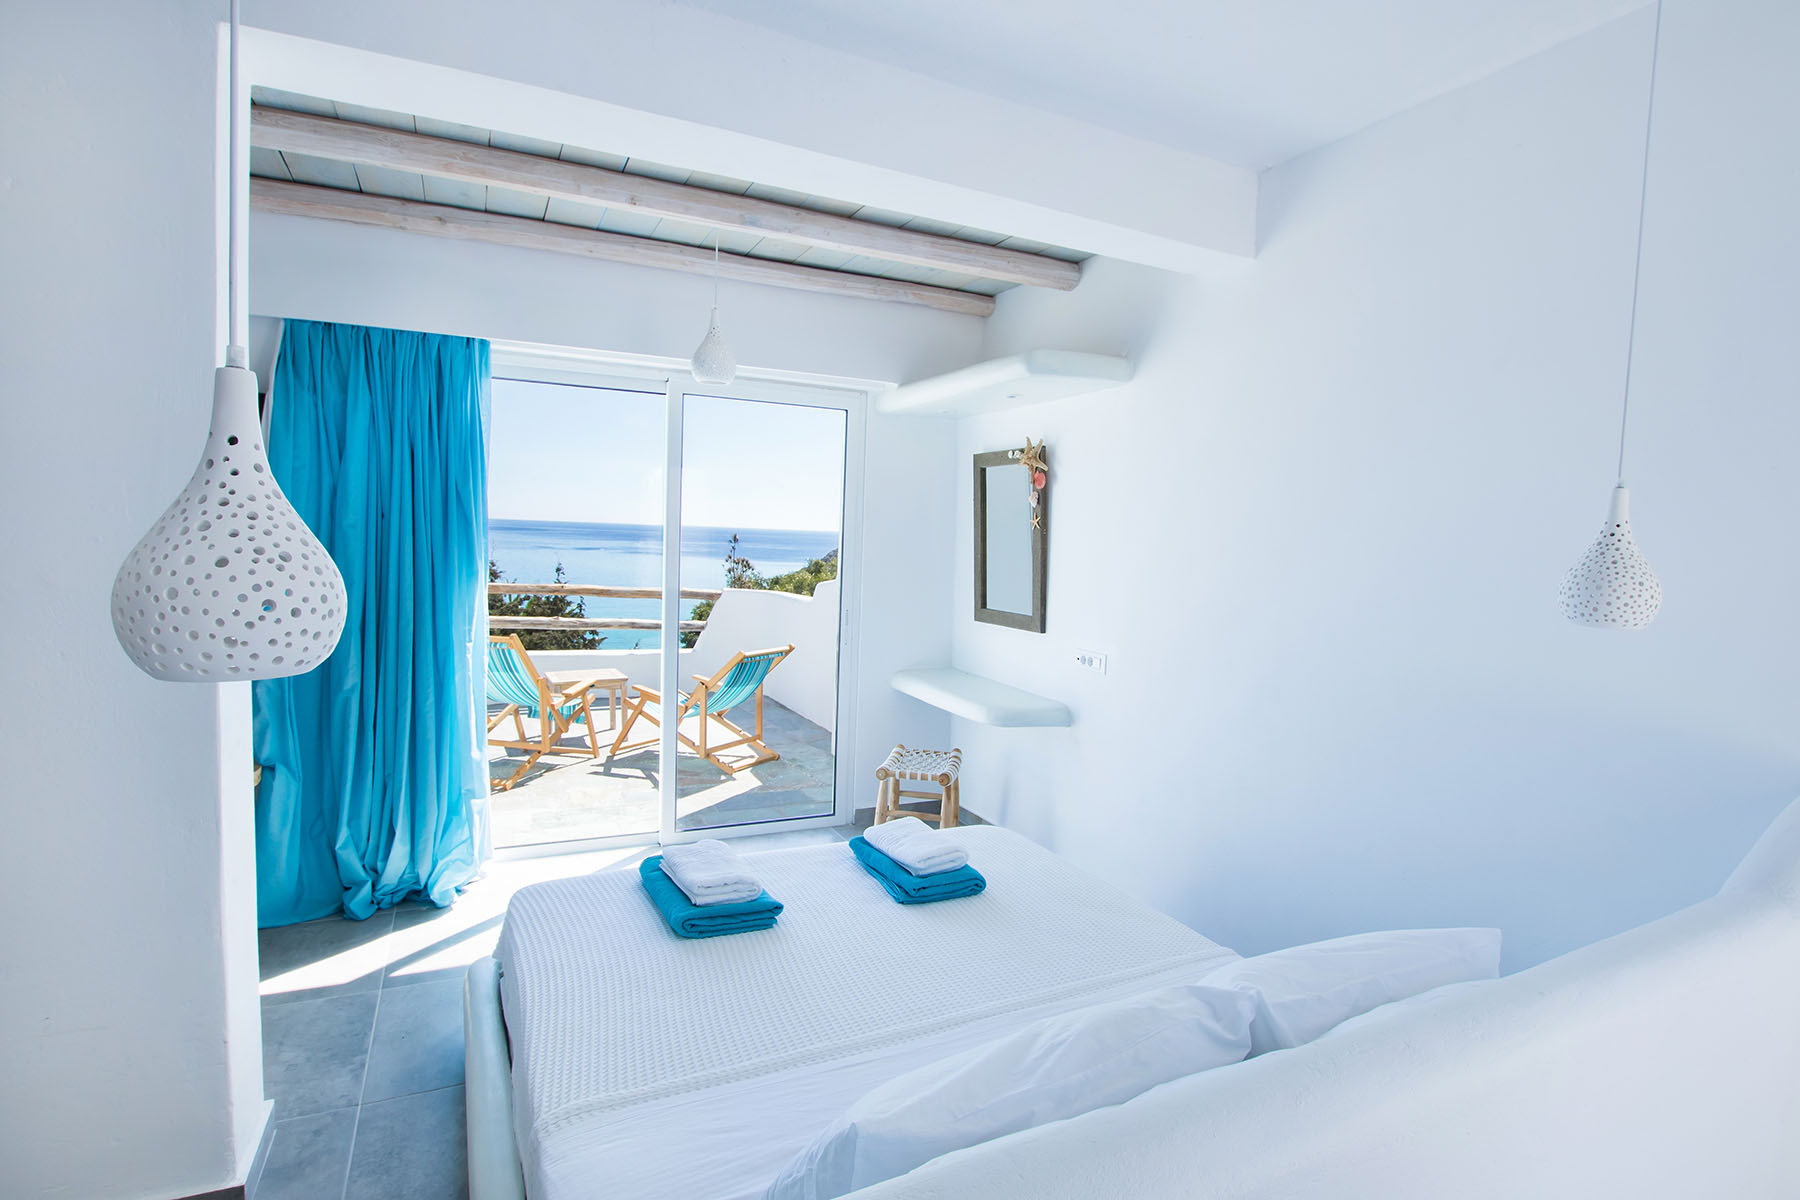 karpathos accommodation - Poseidon Blue Gastronomy Hotel